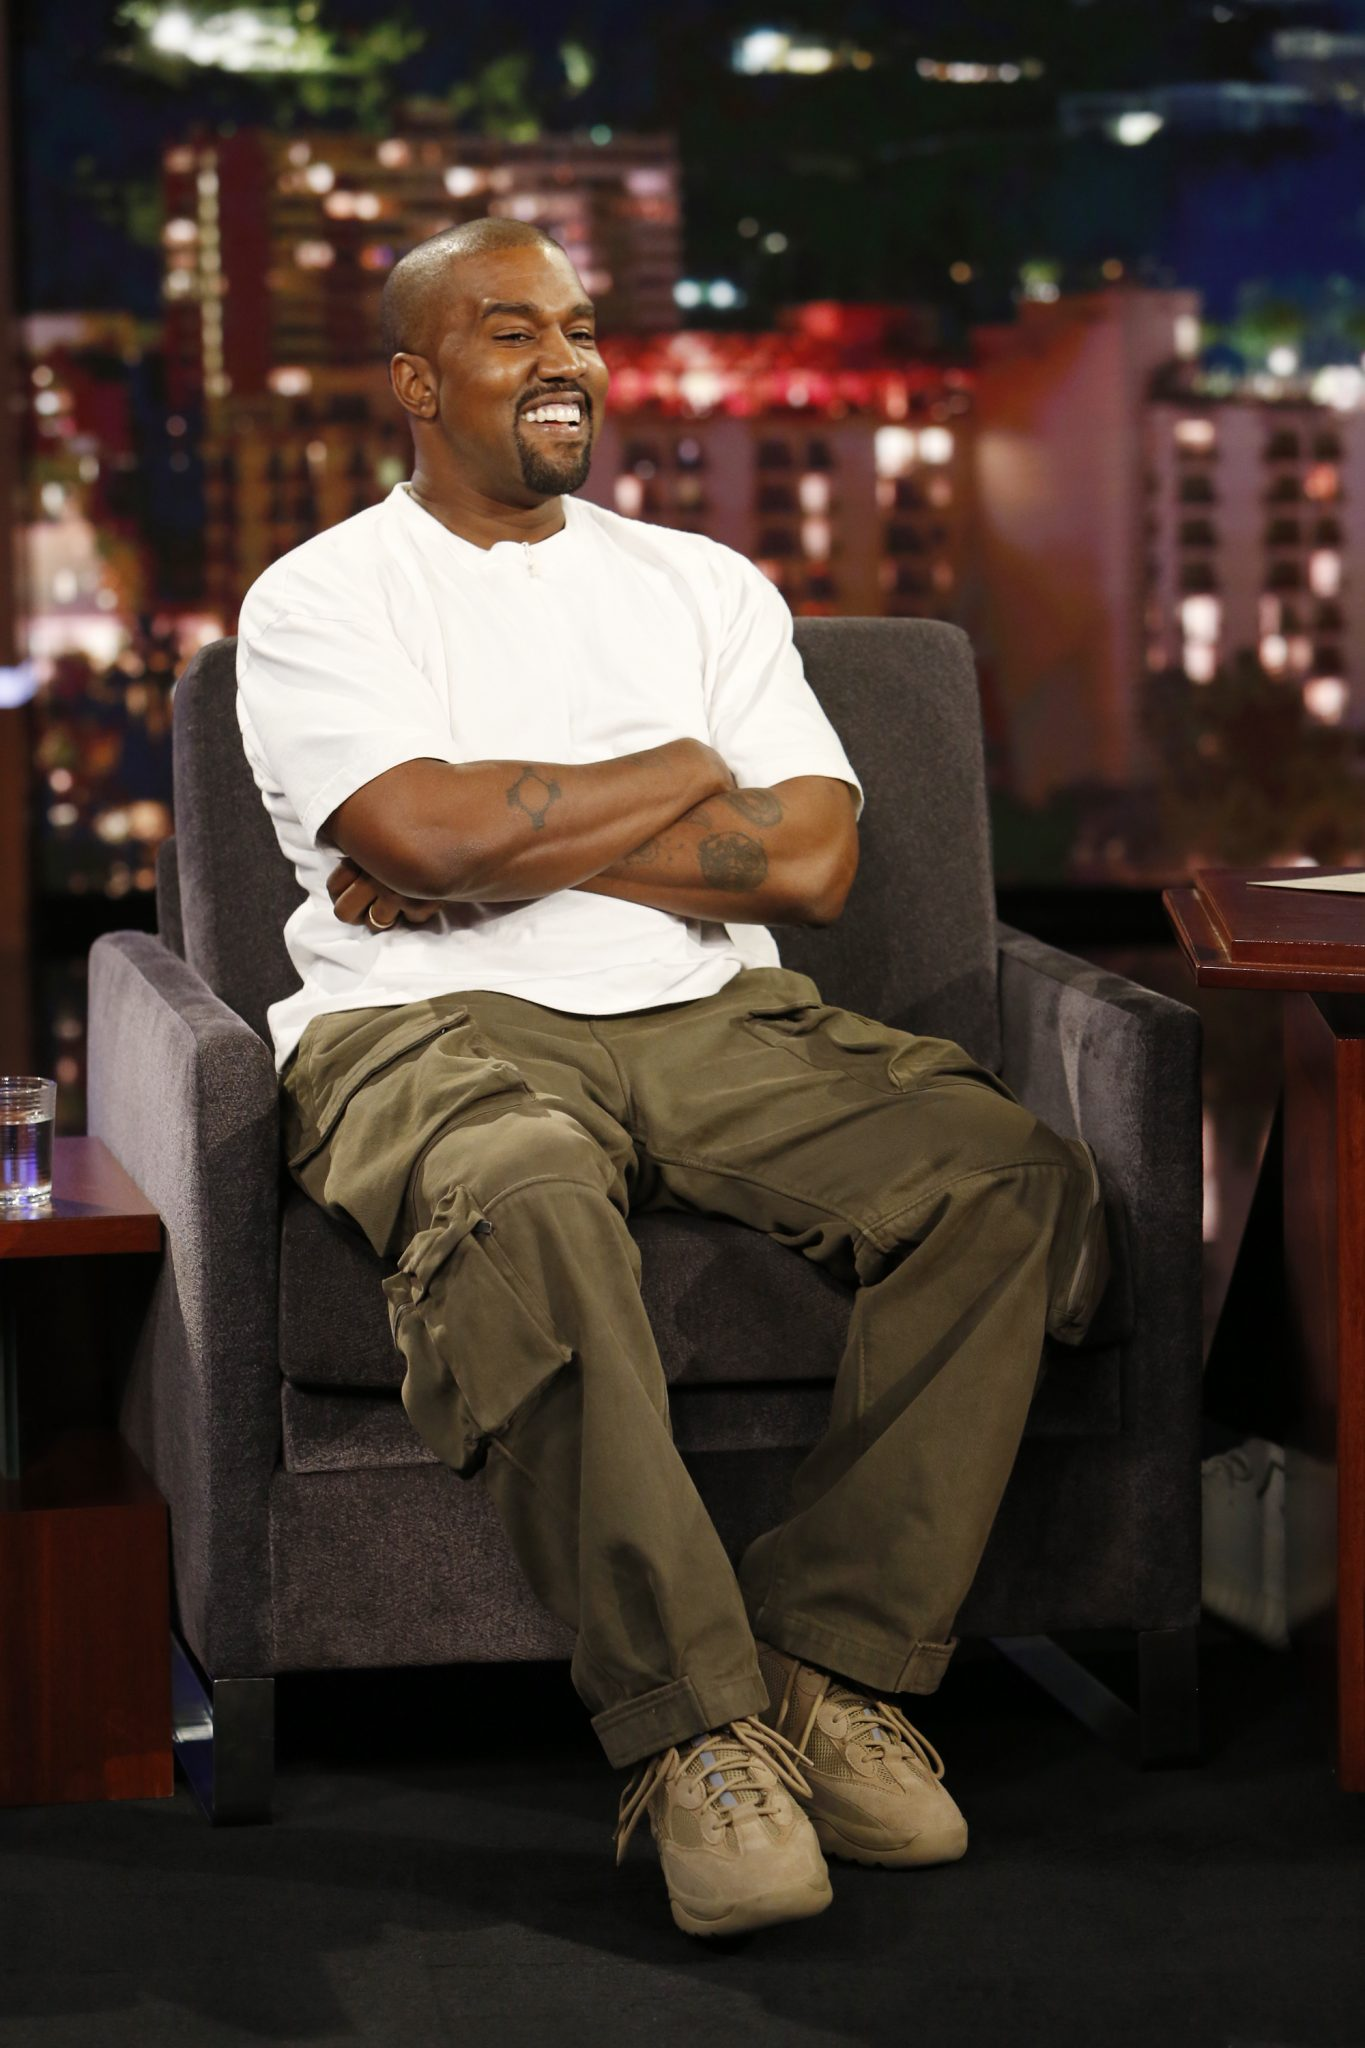 In Case You Missed It: Kanye West On Jimmy Kimmel Live